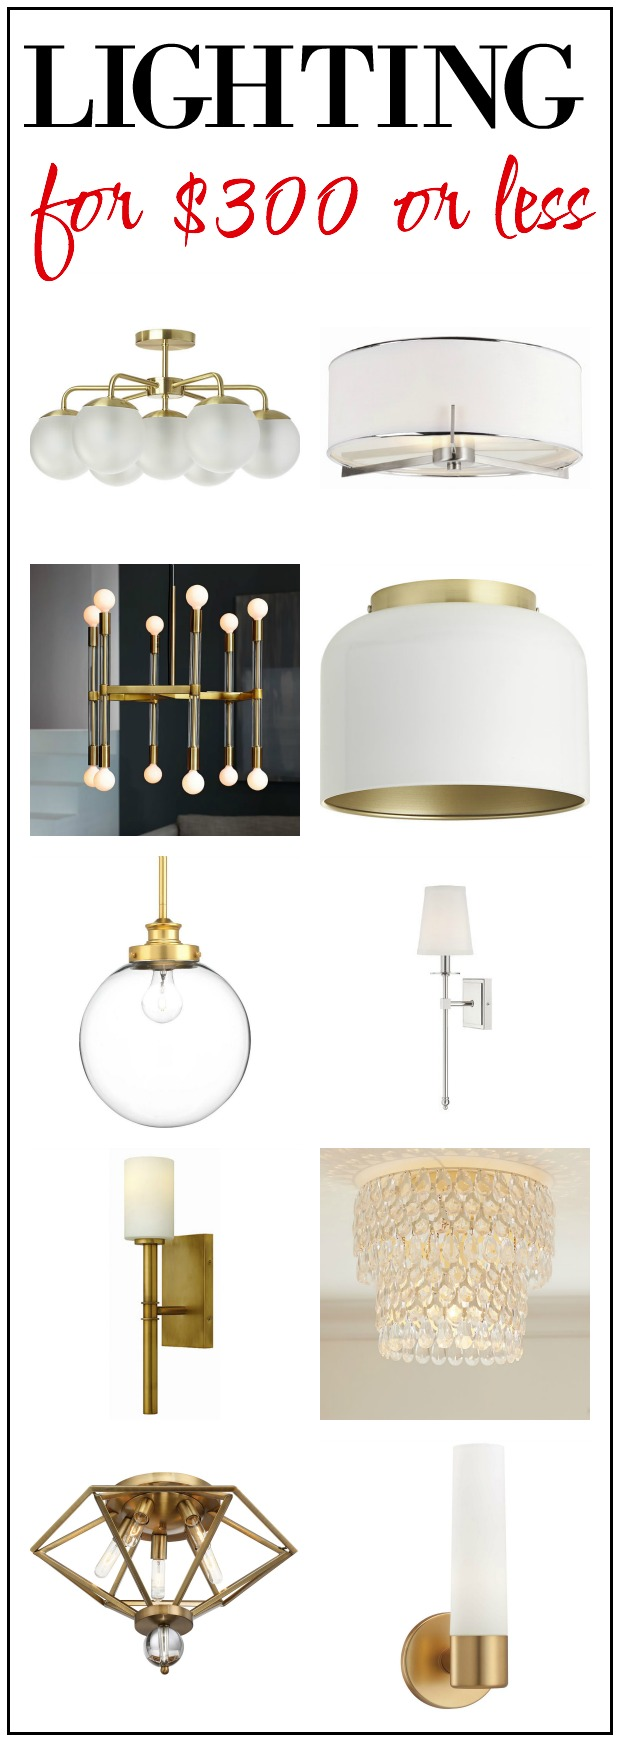 Lighting for $300 or Less: Chandeliers, Flushmounts and Sconces